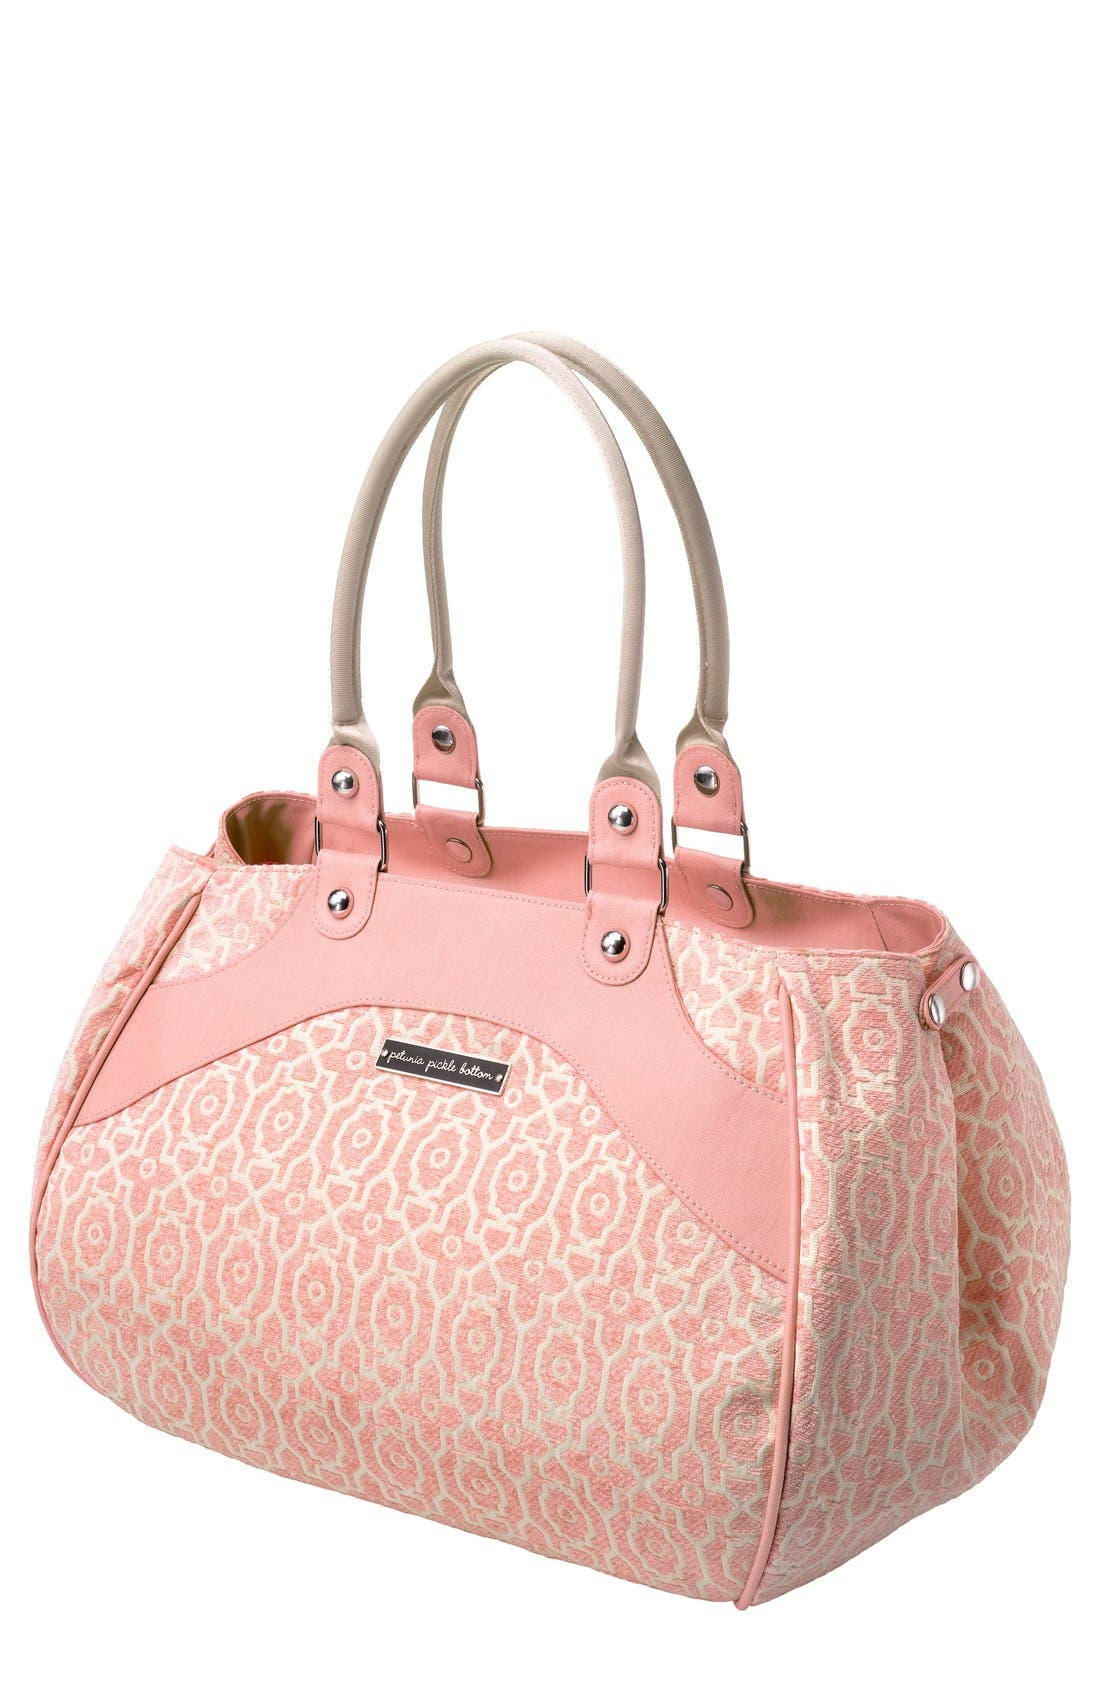 PETUNIA PICKLE BOTTOM 'Wistful Weekend' Diaper Bag